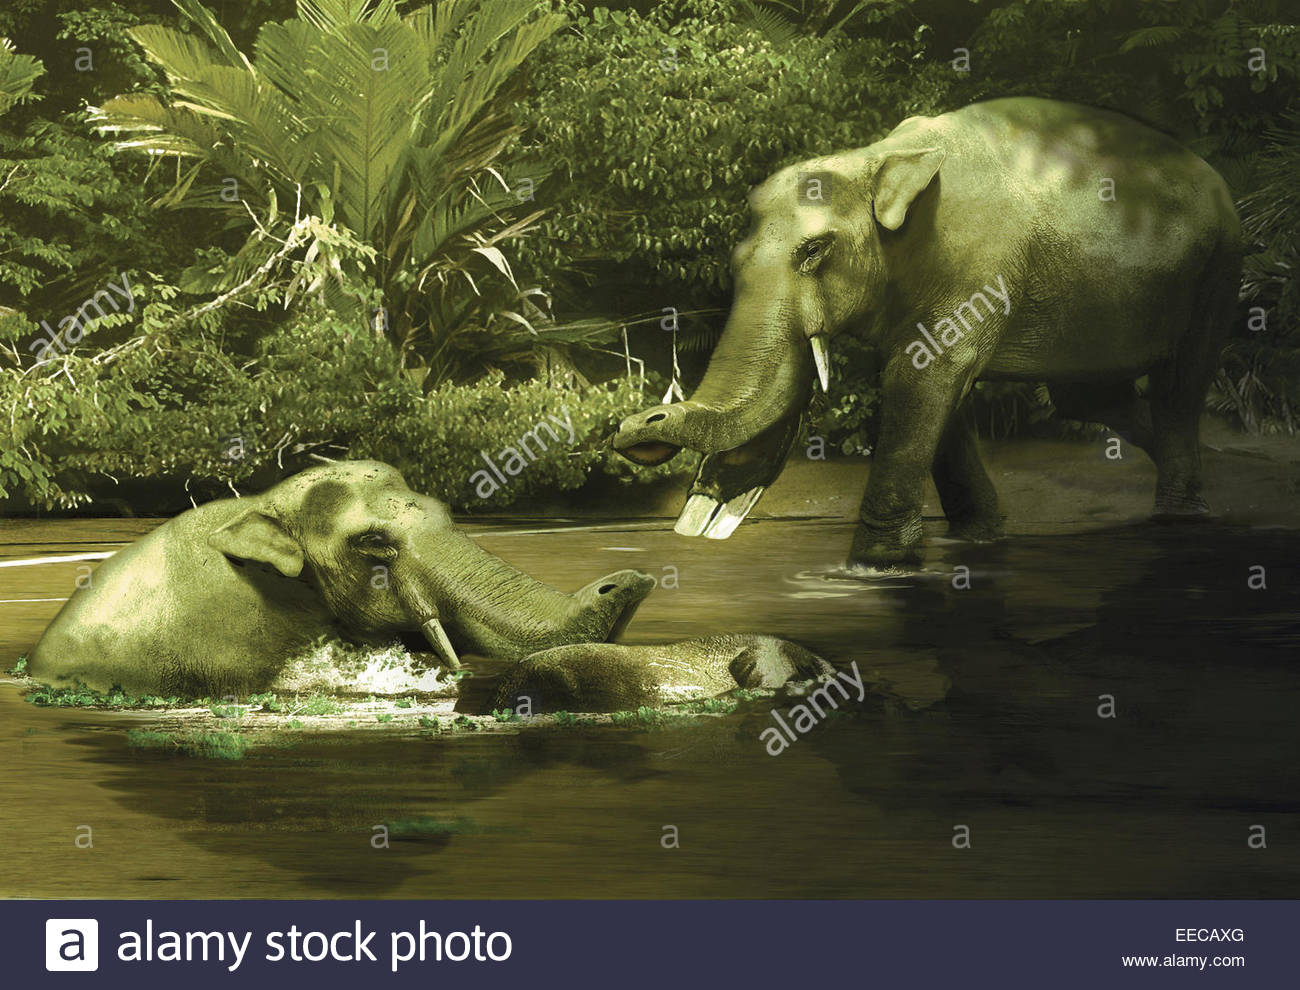 A pair of Platybelodon grazing on water, weeds and plants from the Miocene epoch of Europe. - Stock Image